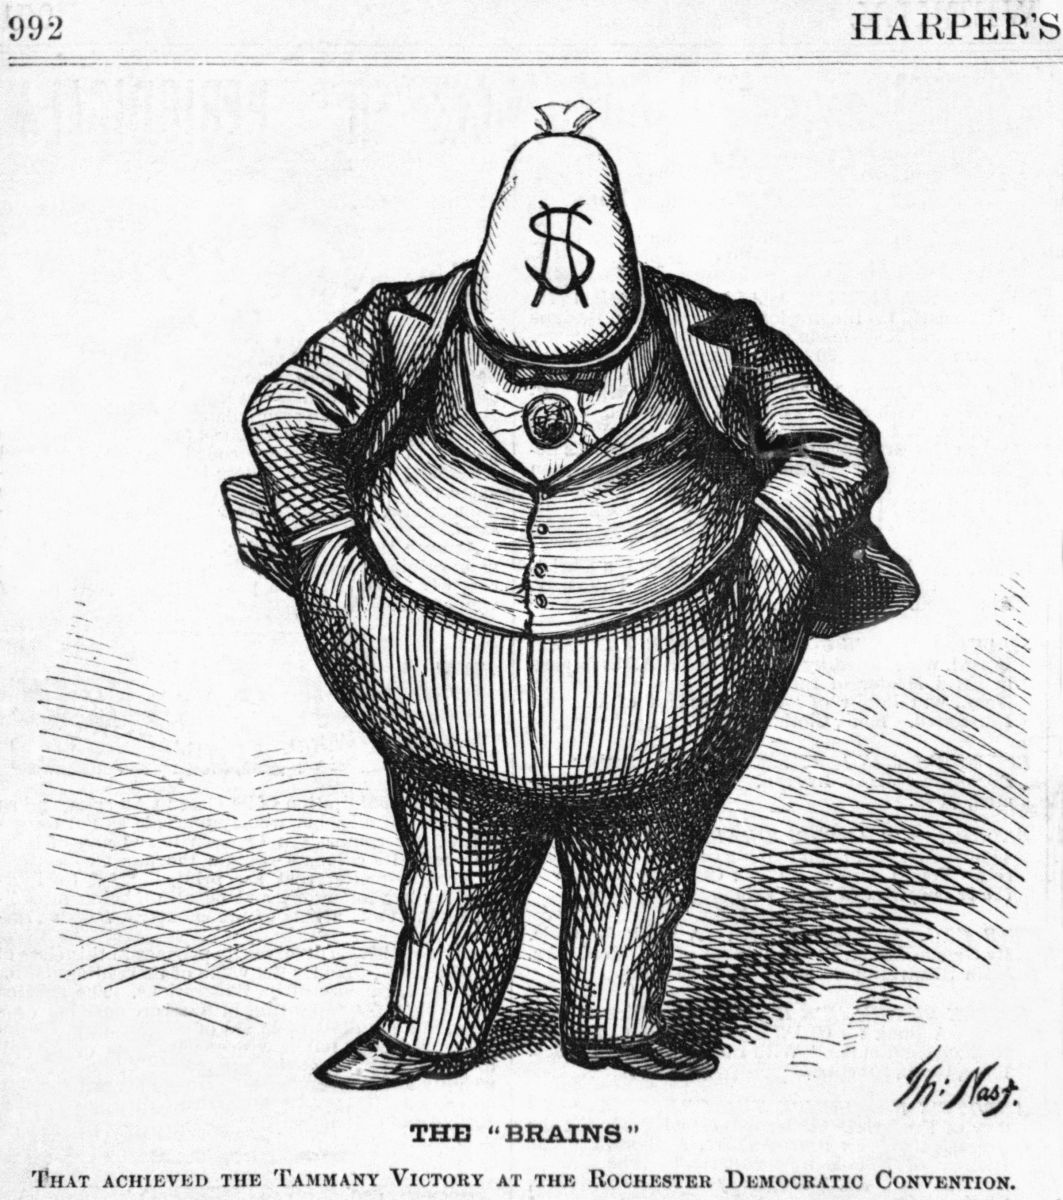 """The """"Brains"""" that achieved the Tammany victory at the Rochester Democratic Convention, 1871. (Woodcut by Thomas Nast)"""